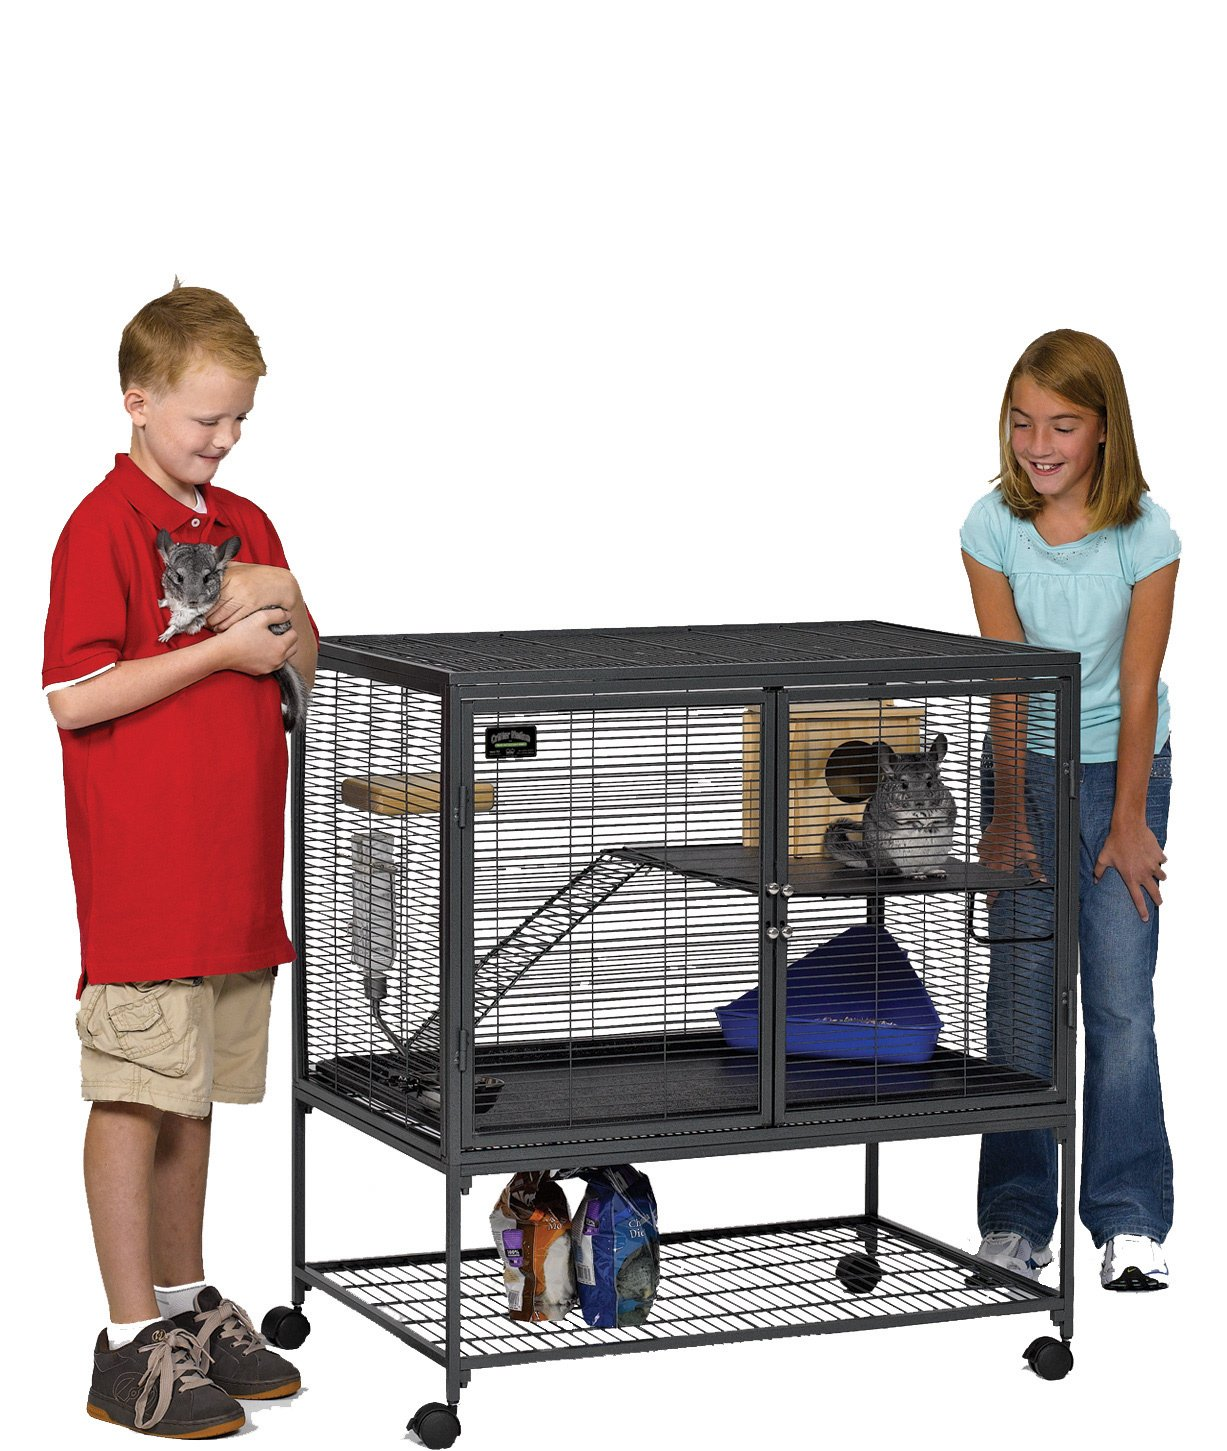 amazoncom midwest deluxe critter nation single unit small animal cage model 161 includes 1 leakproof pans 1 shelf 1 ramps w ramp cover u0026 4 locking